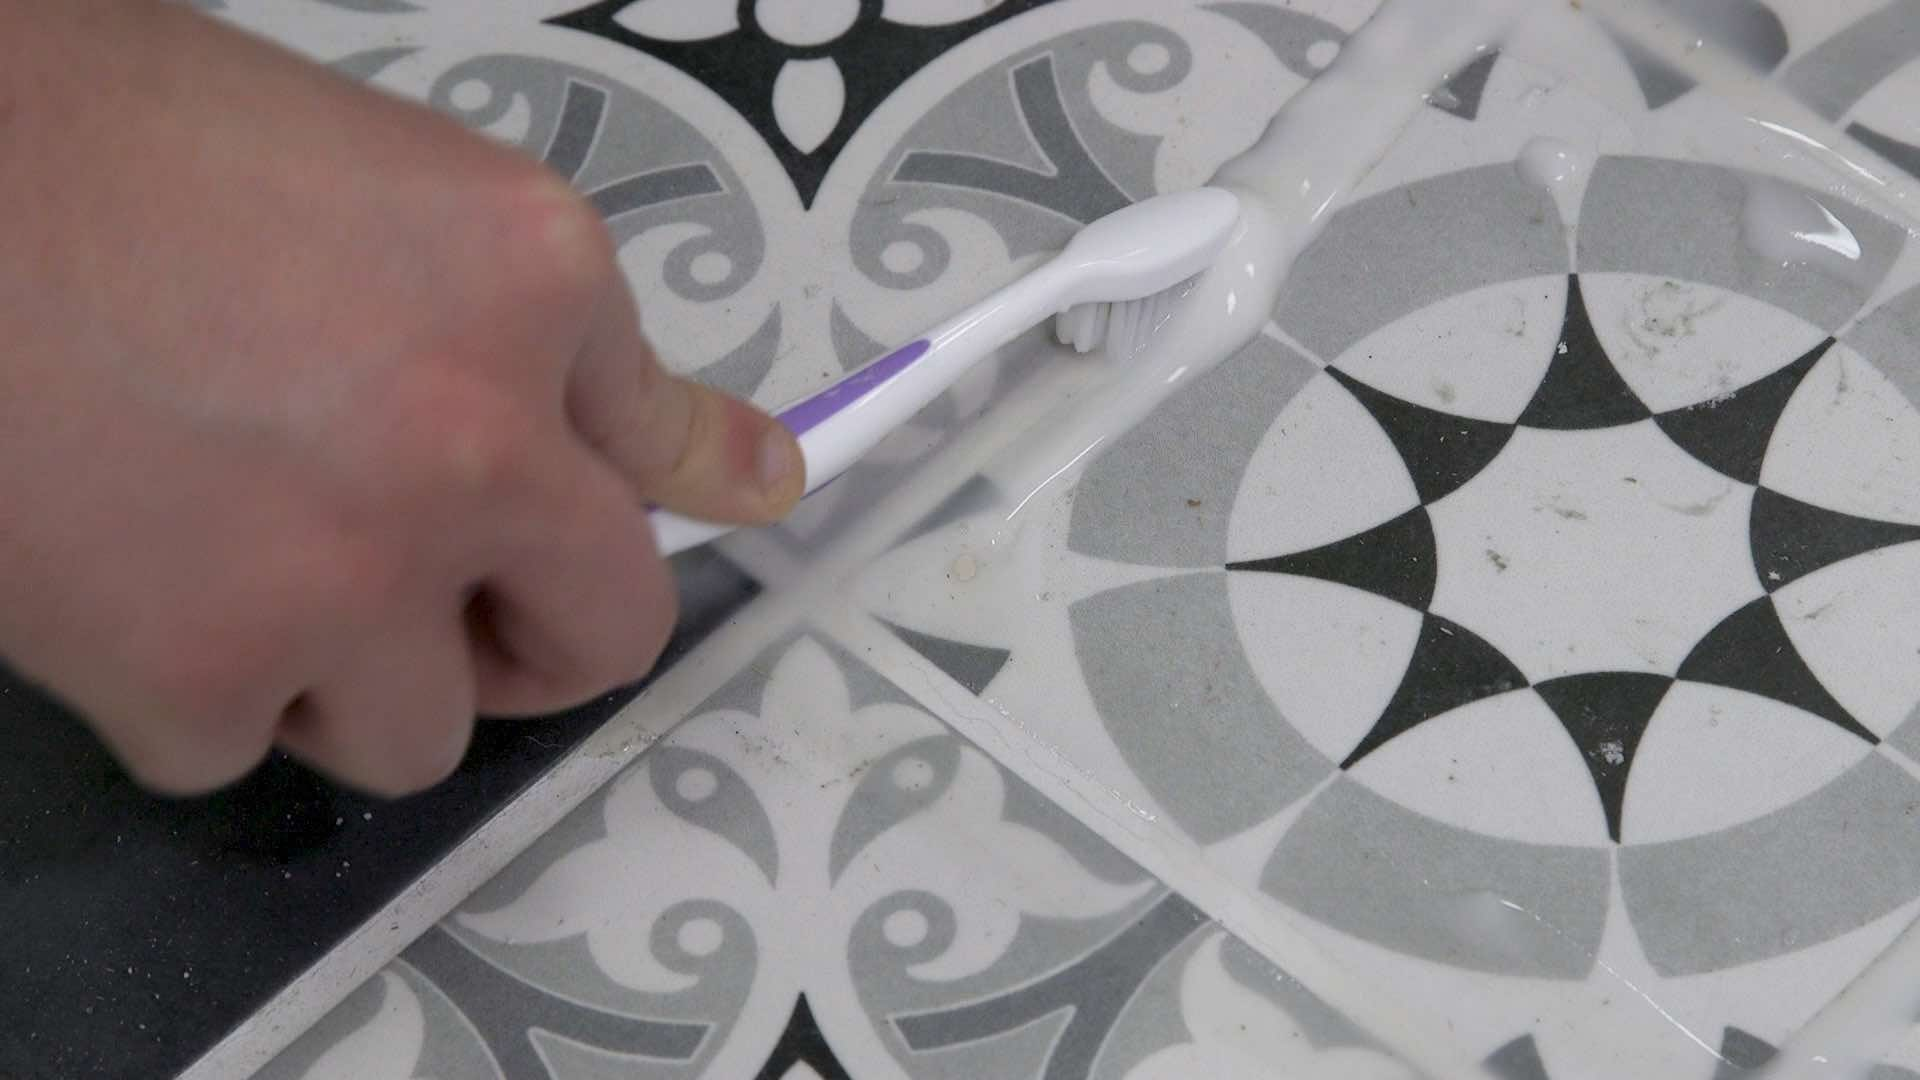 Scrubbing grout with a toothbrush